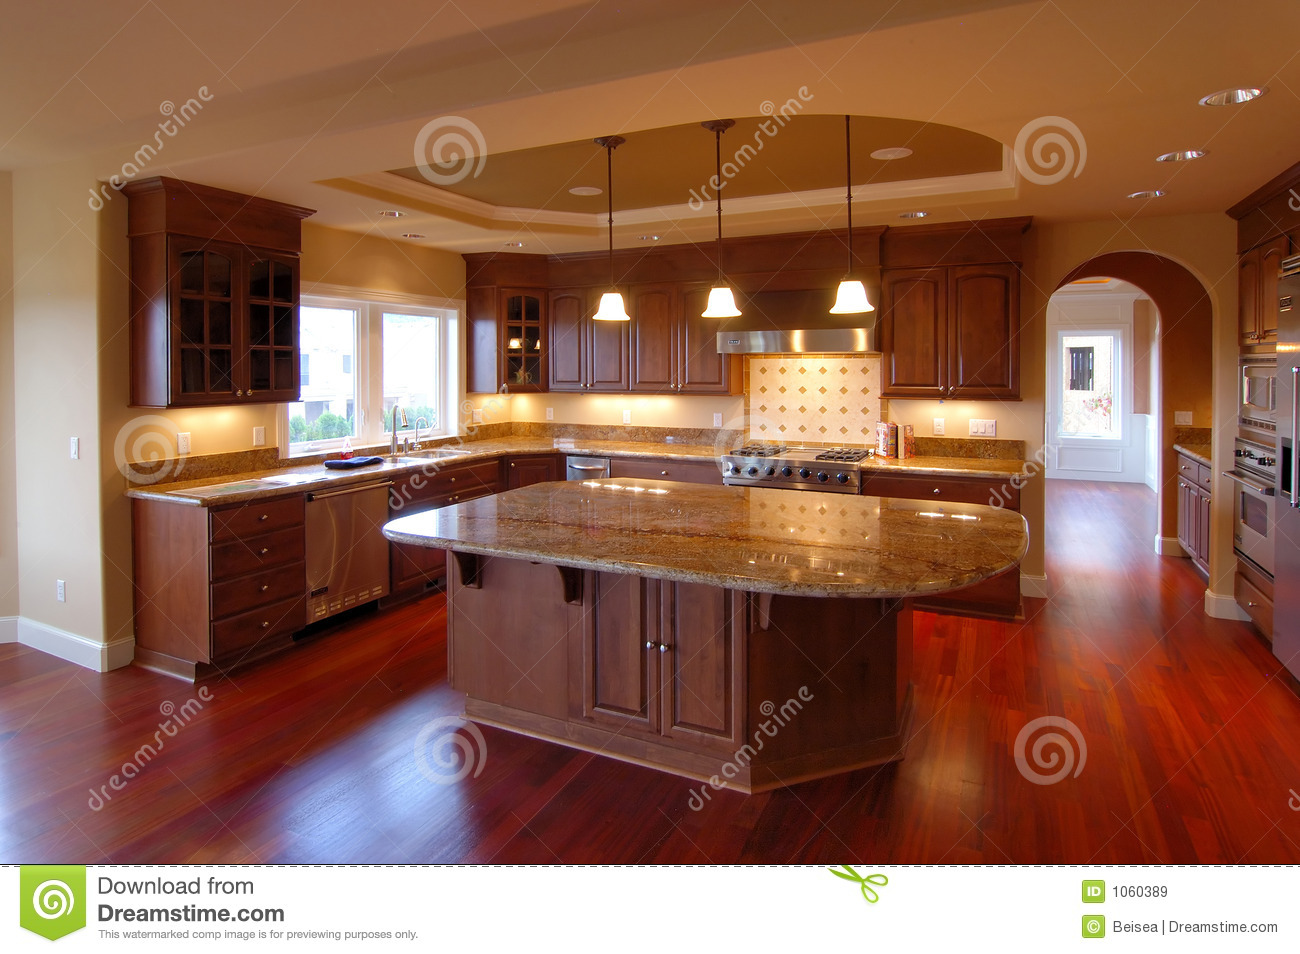 Luxury american house interior no 4 stock image image of - Casas americanas interior ...